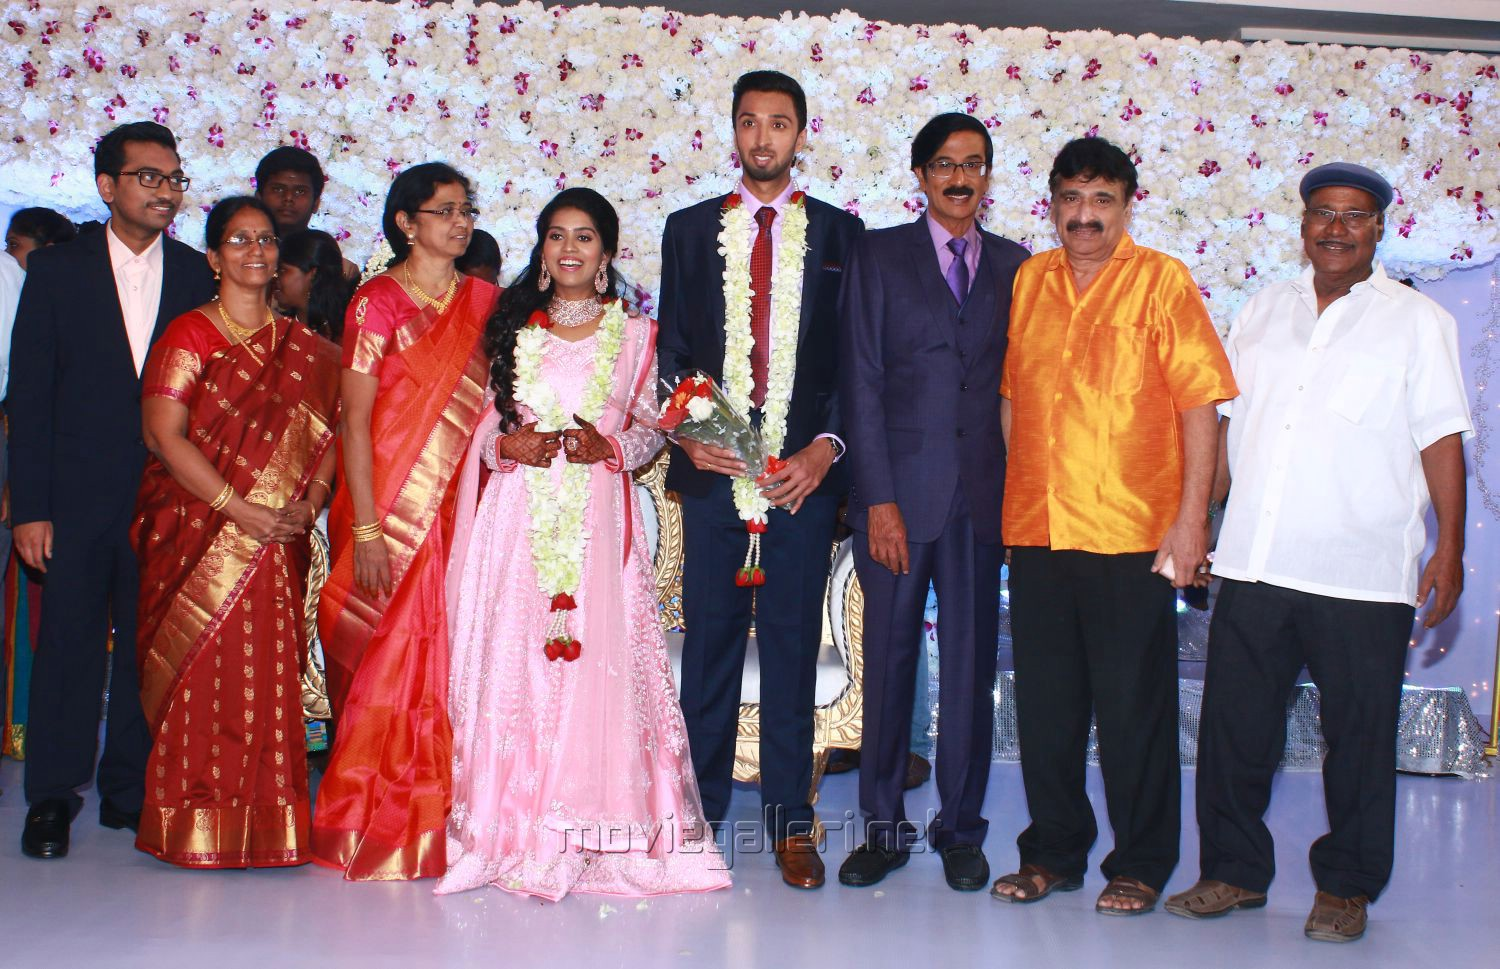 Ramesh Khanna @ Manobala Son Harish Priya Wedding Reception Stills